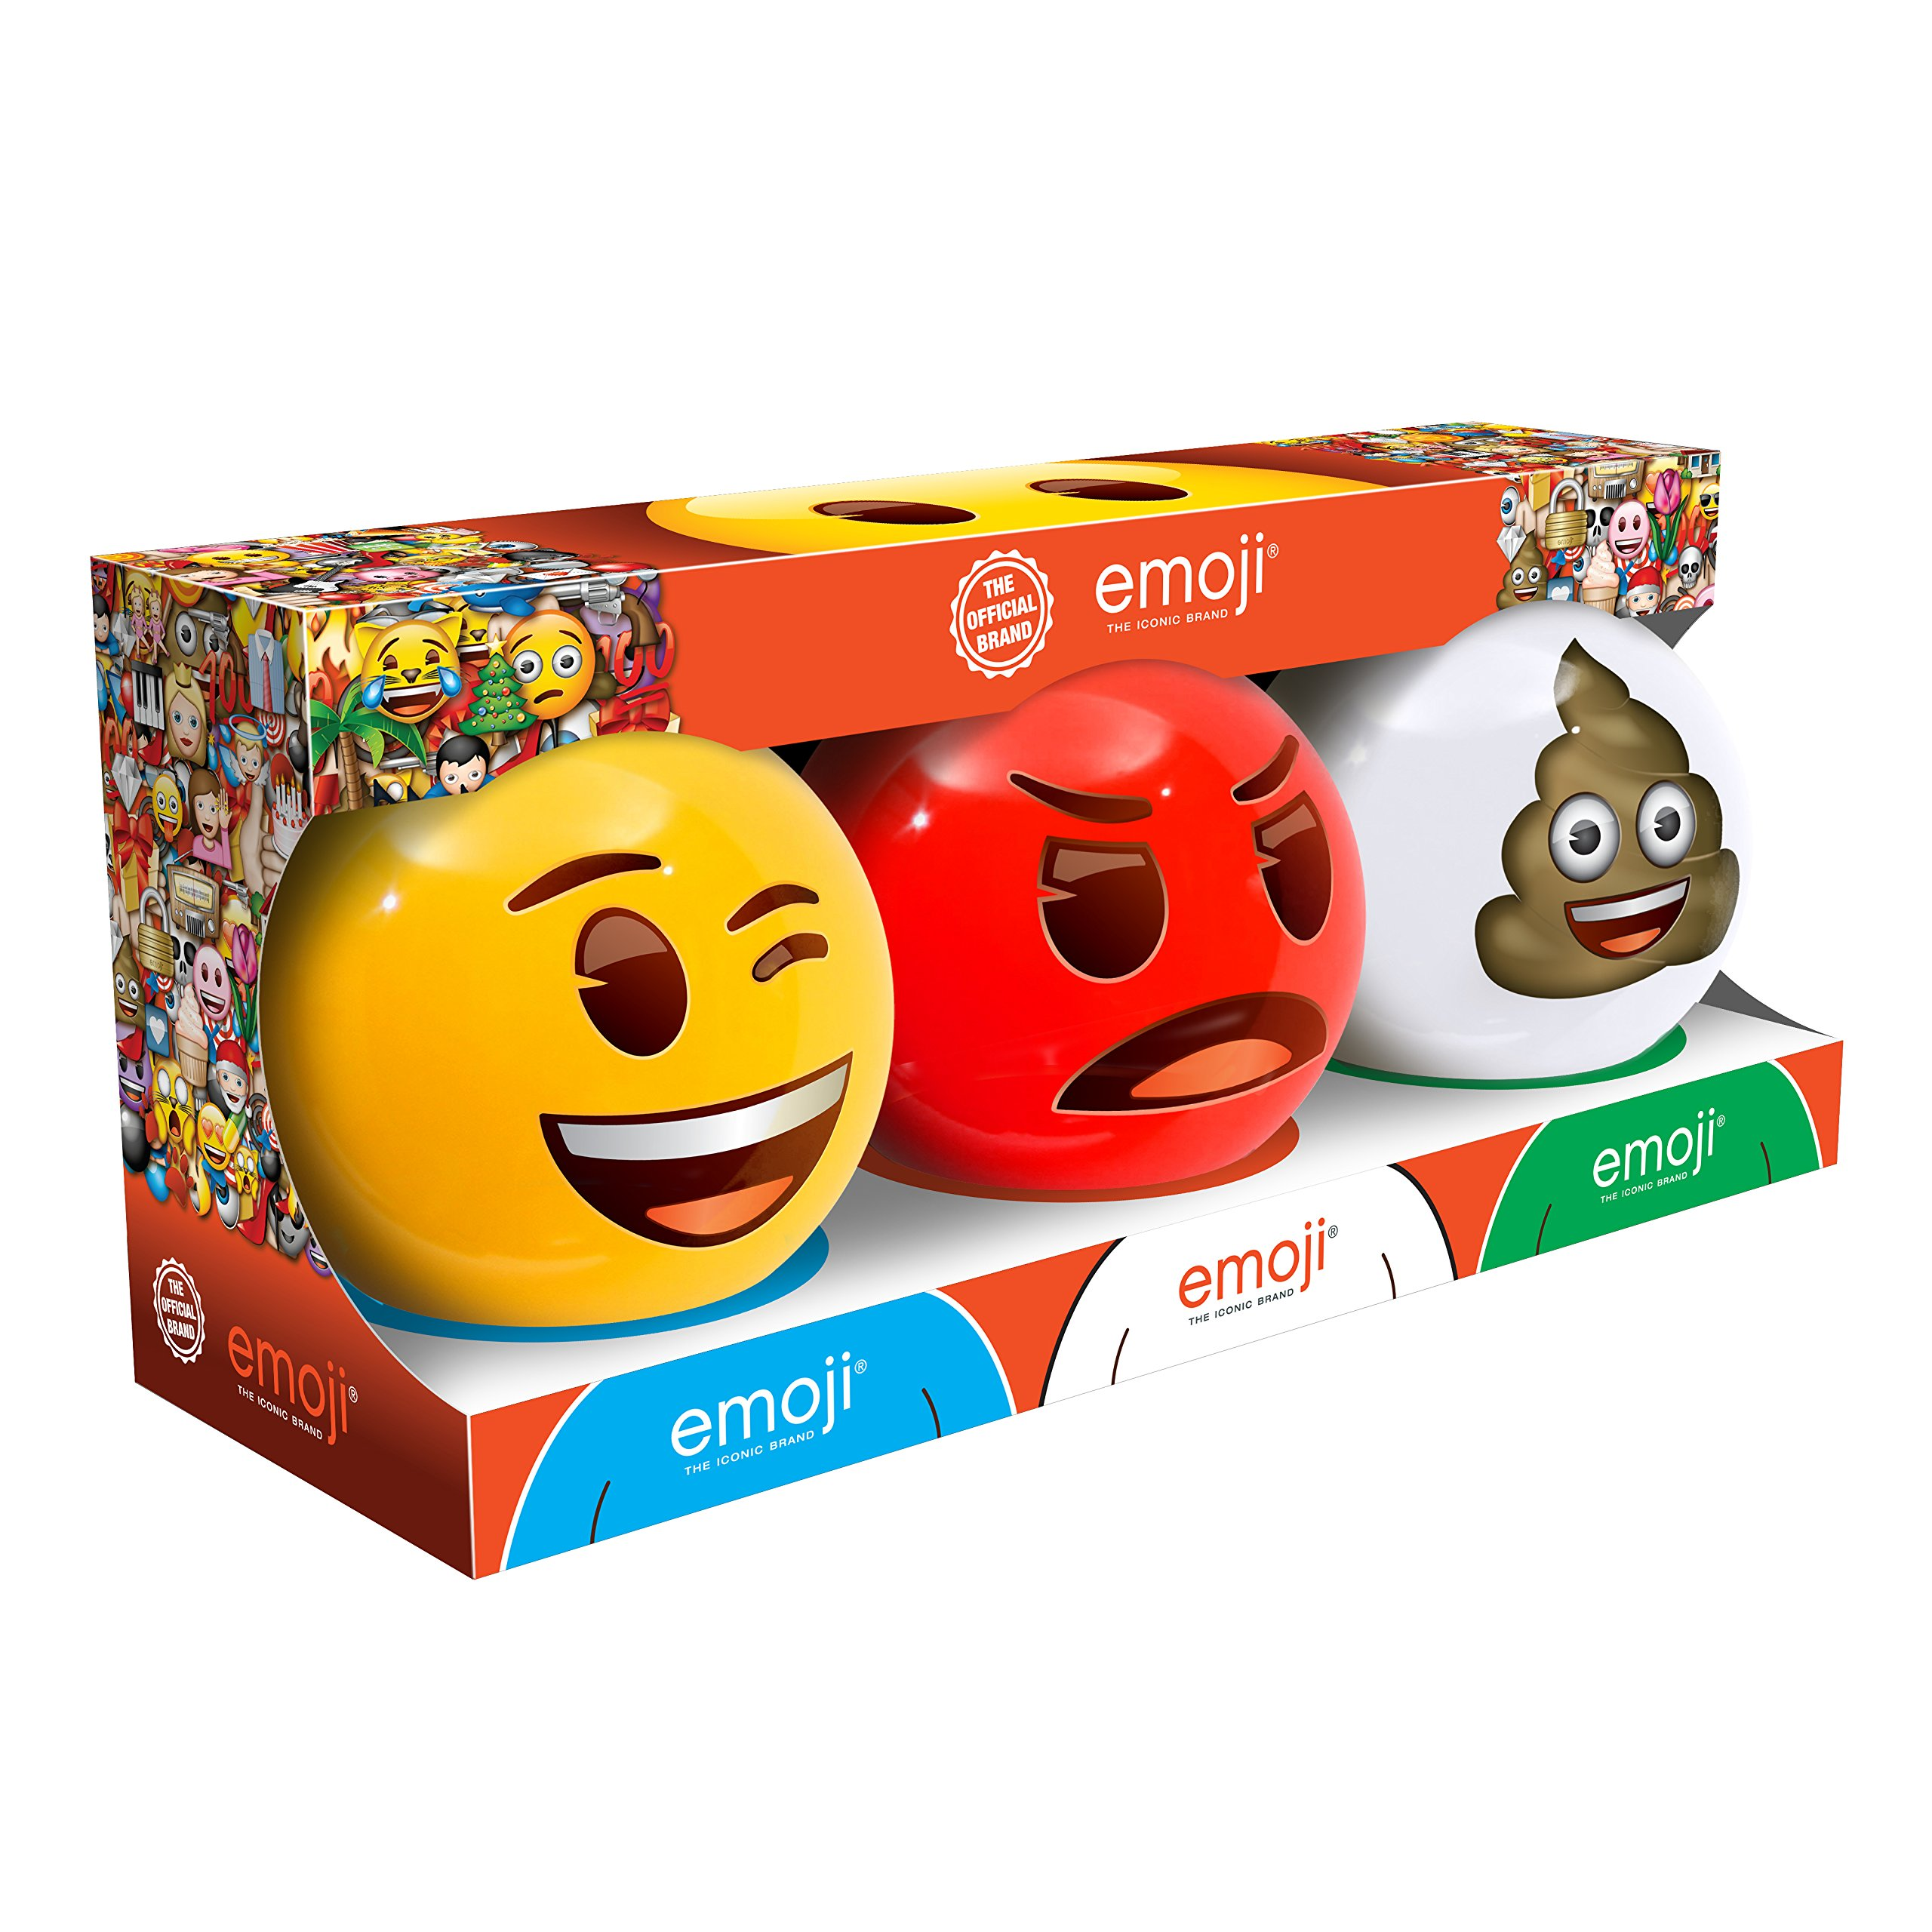 emoji Mini 3 Dodge Ball Set with Display Stands - Wink, Angry and Poop Mini Dodge Balls